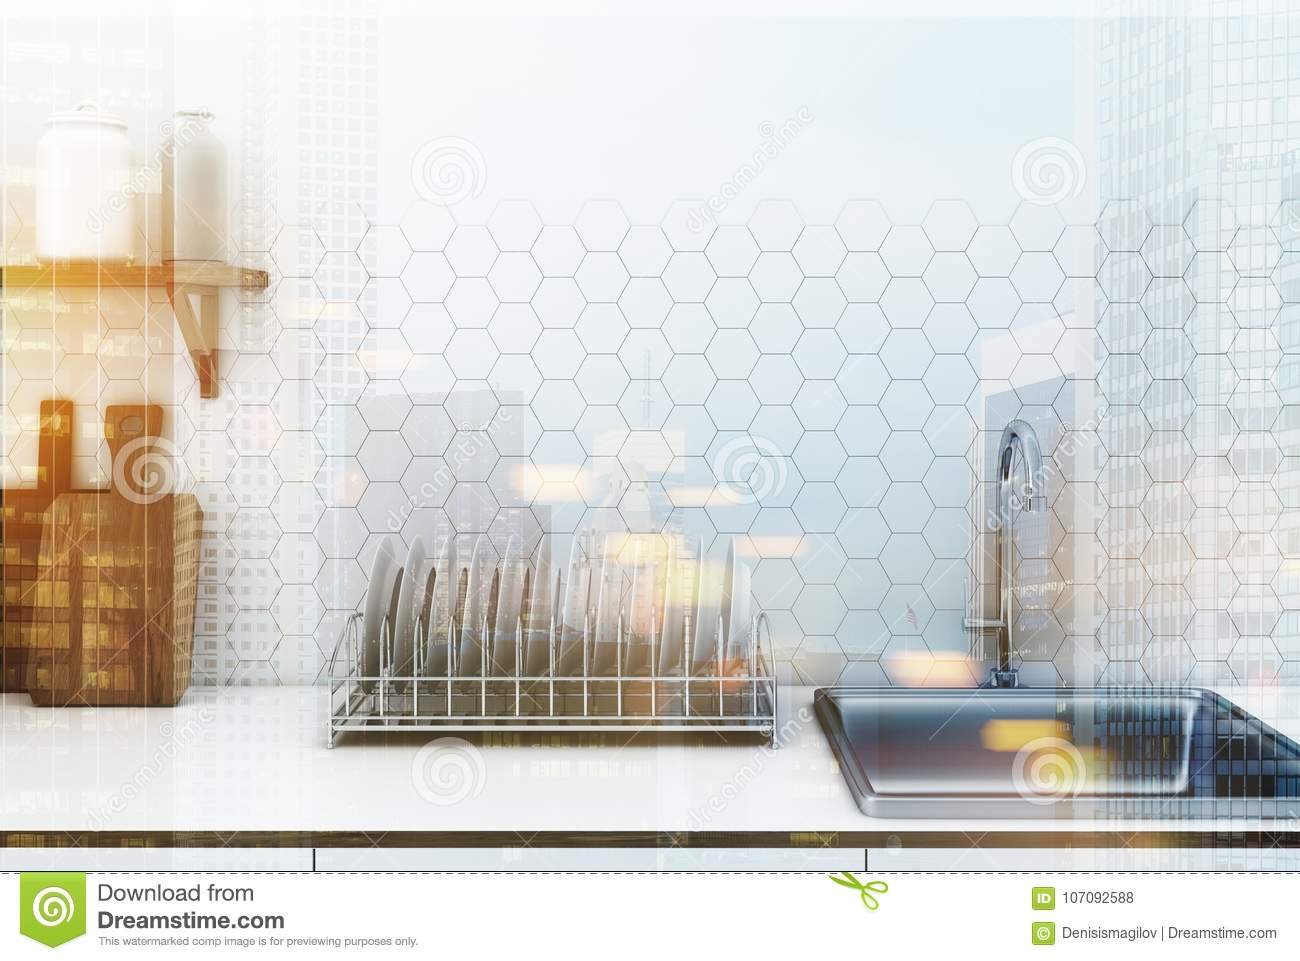 White Hexagon Tile Kitchen Countertop Toned Stock Illustration Illustration Of Clean Creative 107092588